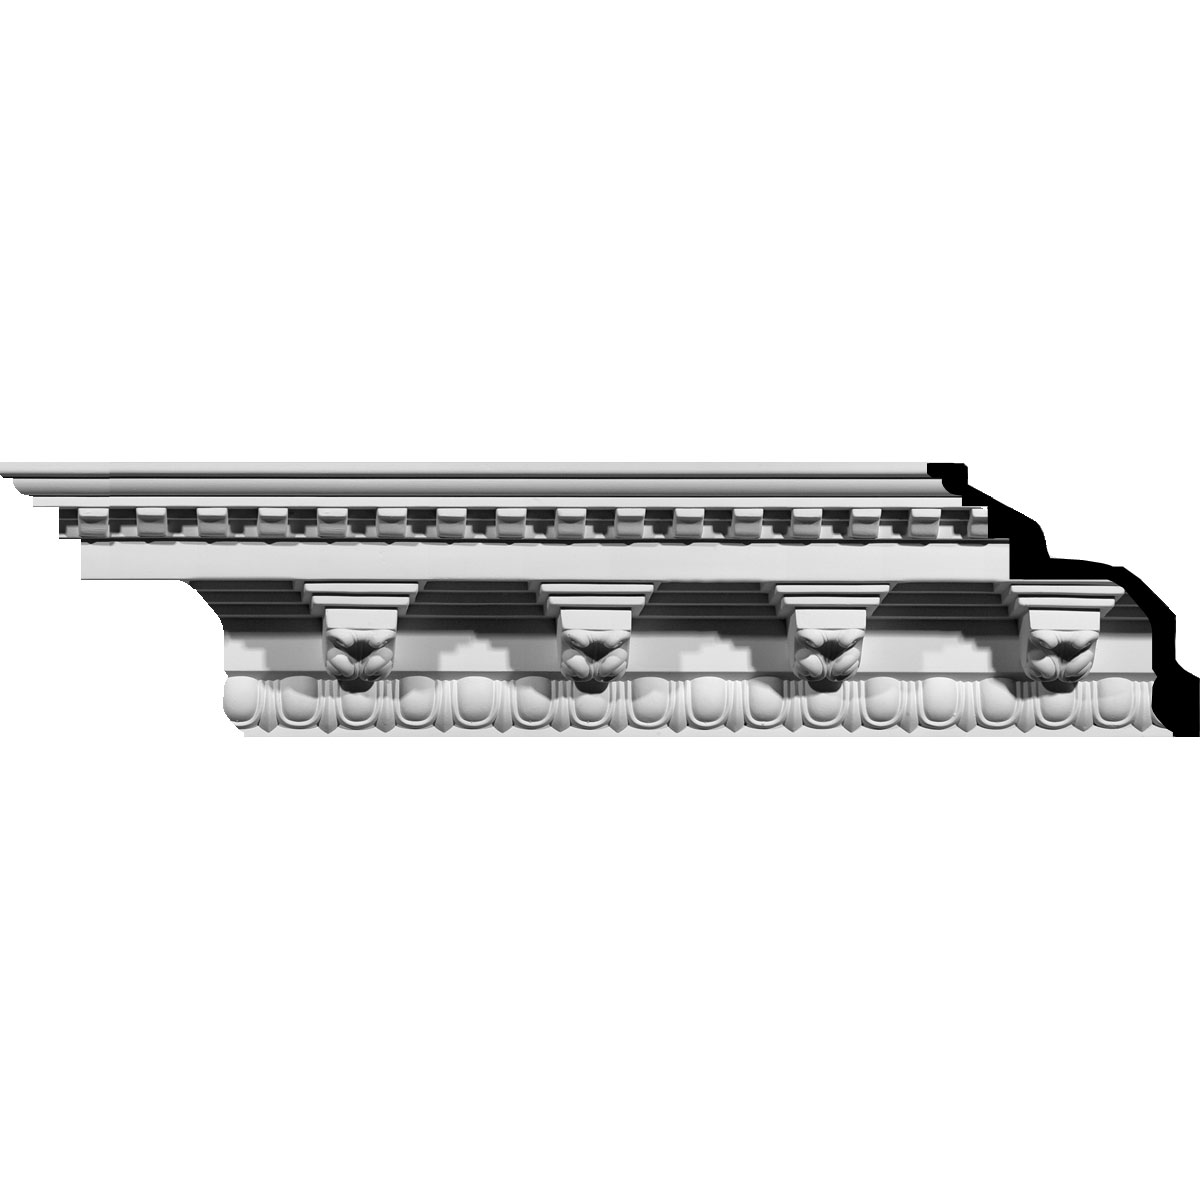 "6 1/2""H x 6 1/2""P x 9 1/4""F x 94 1/2""L Stockport Crown Moulding"